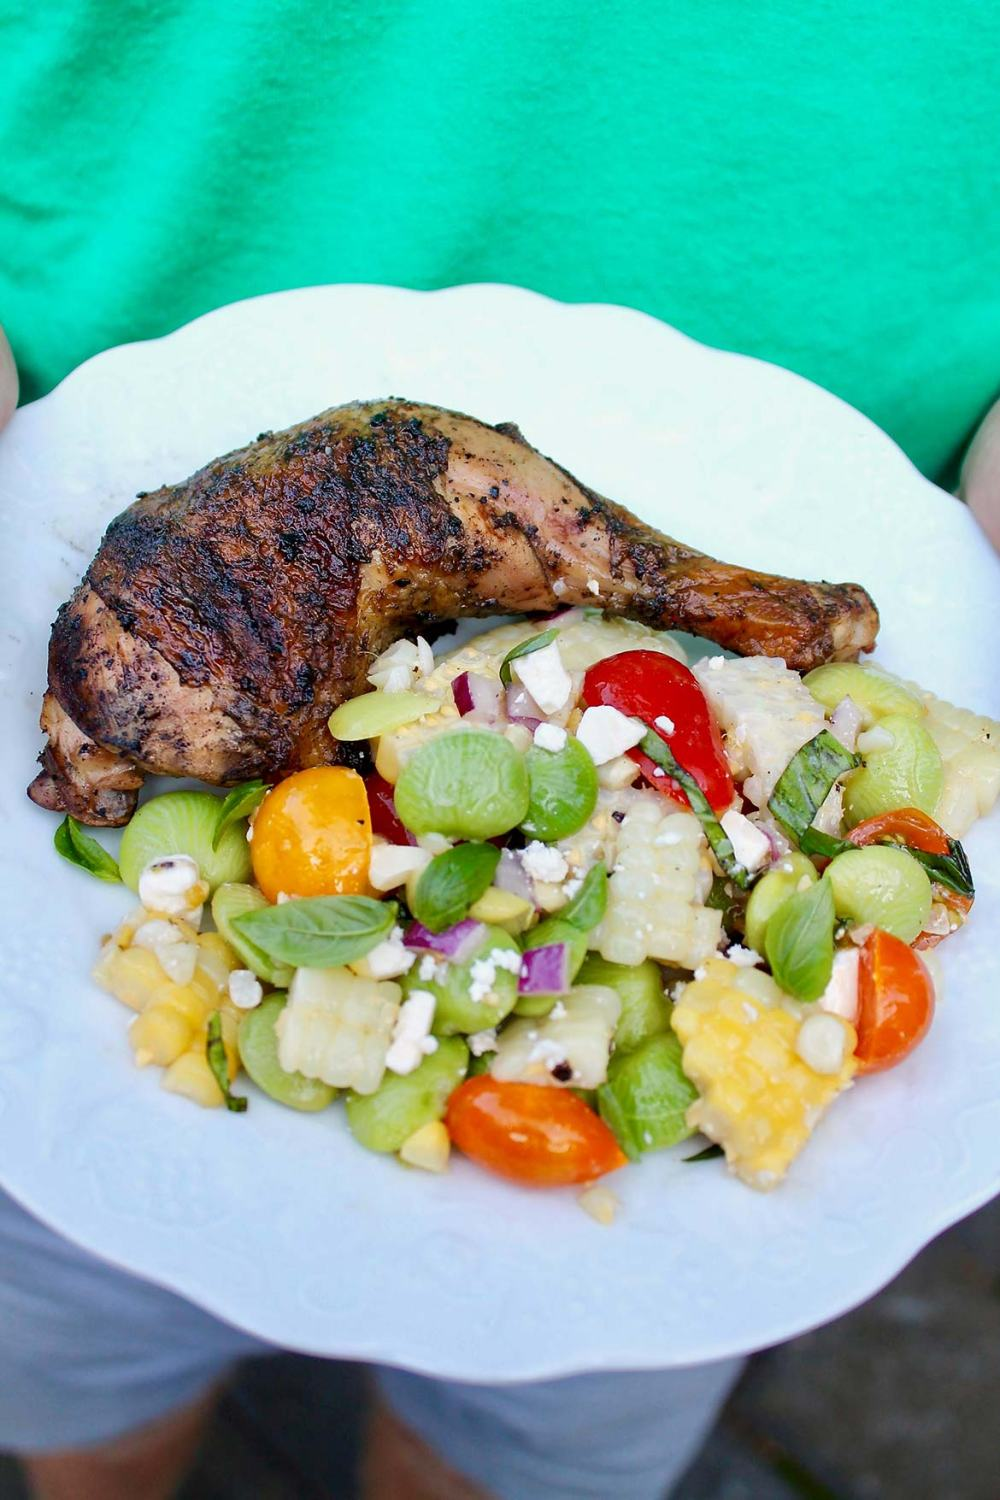 Cornell Chicken -- Reminiscent of the classic roadside barbecue, advance prep and tender, juicy meat make this chicken dinner a real winner. For those who enjoy, a favorite sauce could be served on the side.